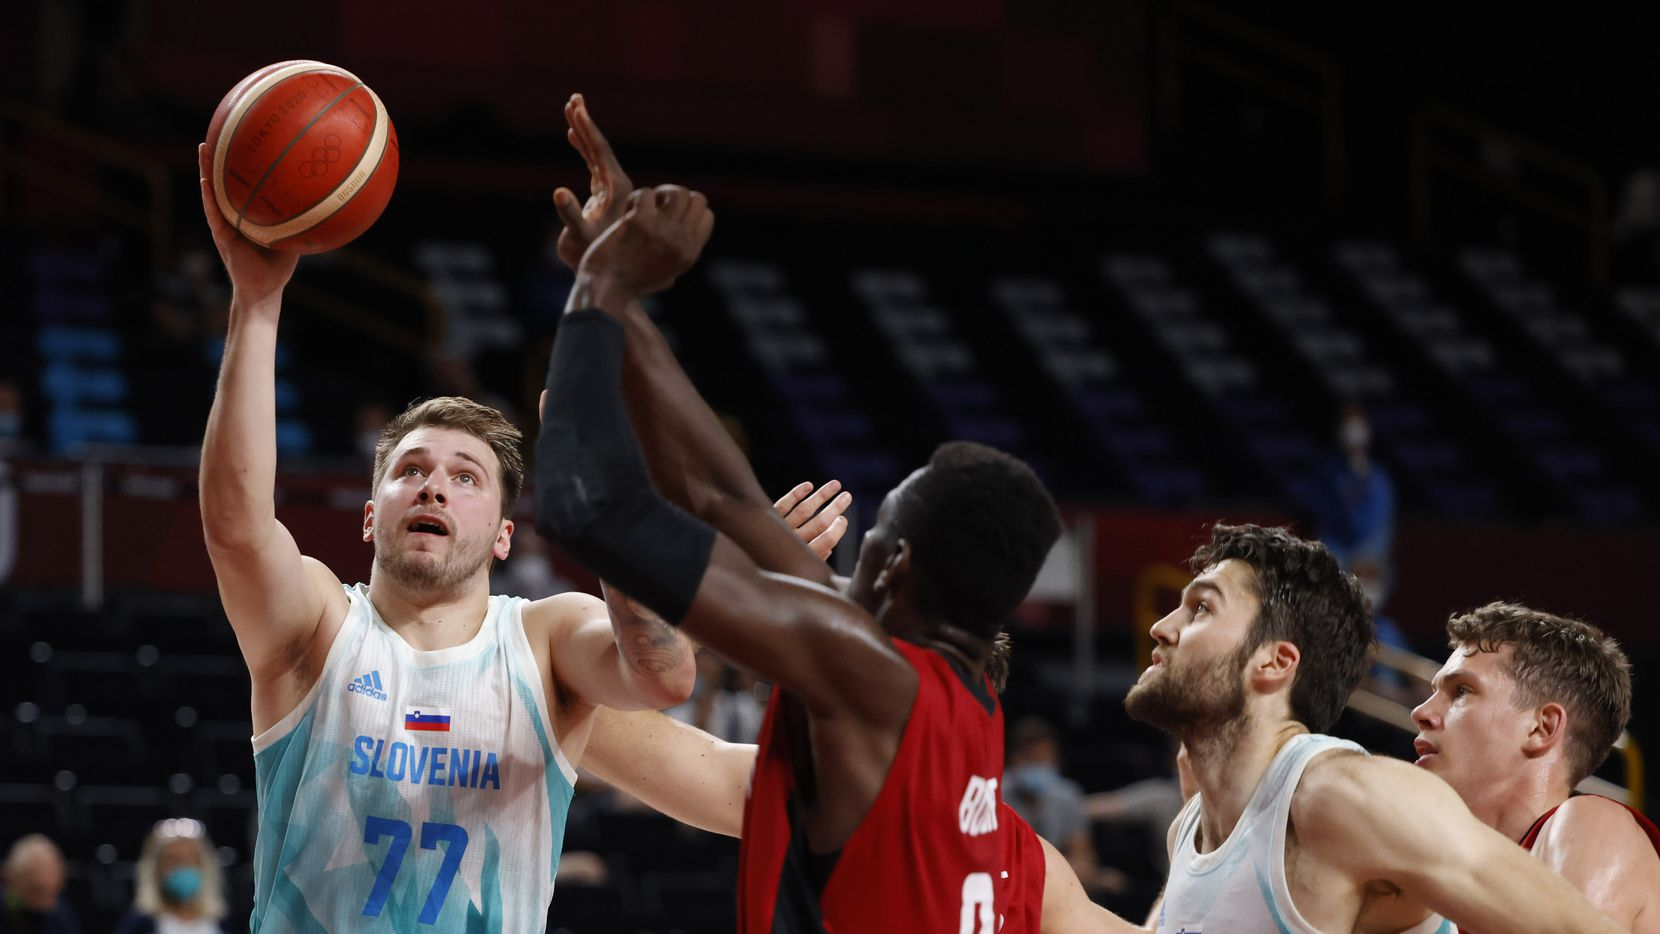 Slovenia's Luka Doncic (77) attempts a shot on Germany's Isaac Bonga (0) during the first half of play of a quarter final basketball game at the postponed 2020 Tokyo Olympics at Saitama Super Arena, on Tuesday, August 3, 2021, in Saitama, Japan. (Vernon Bryant/The Dallas Morning News)